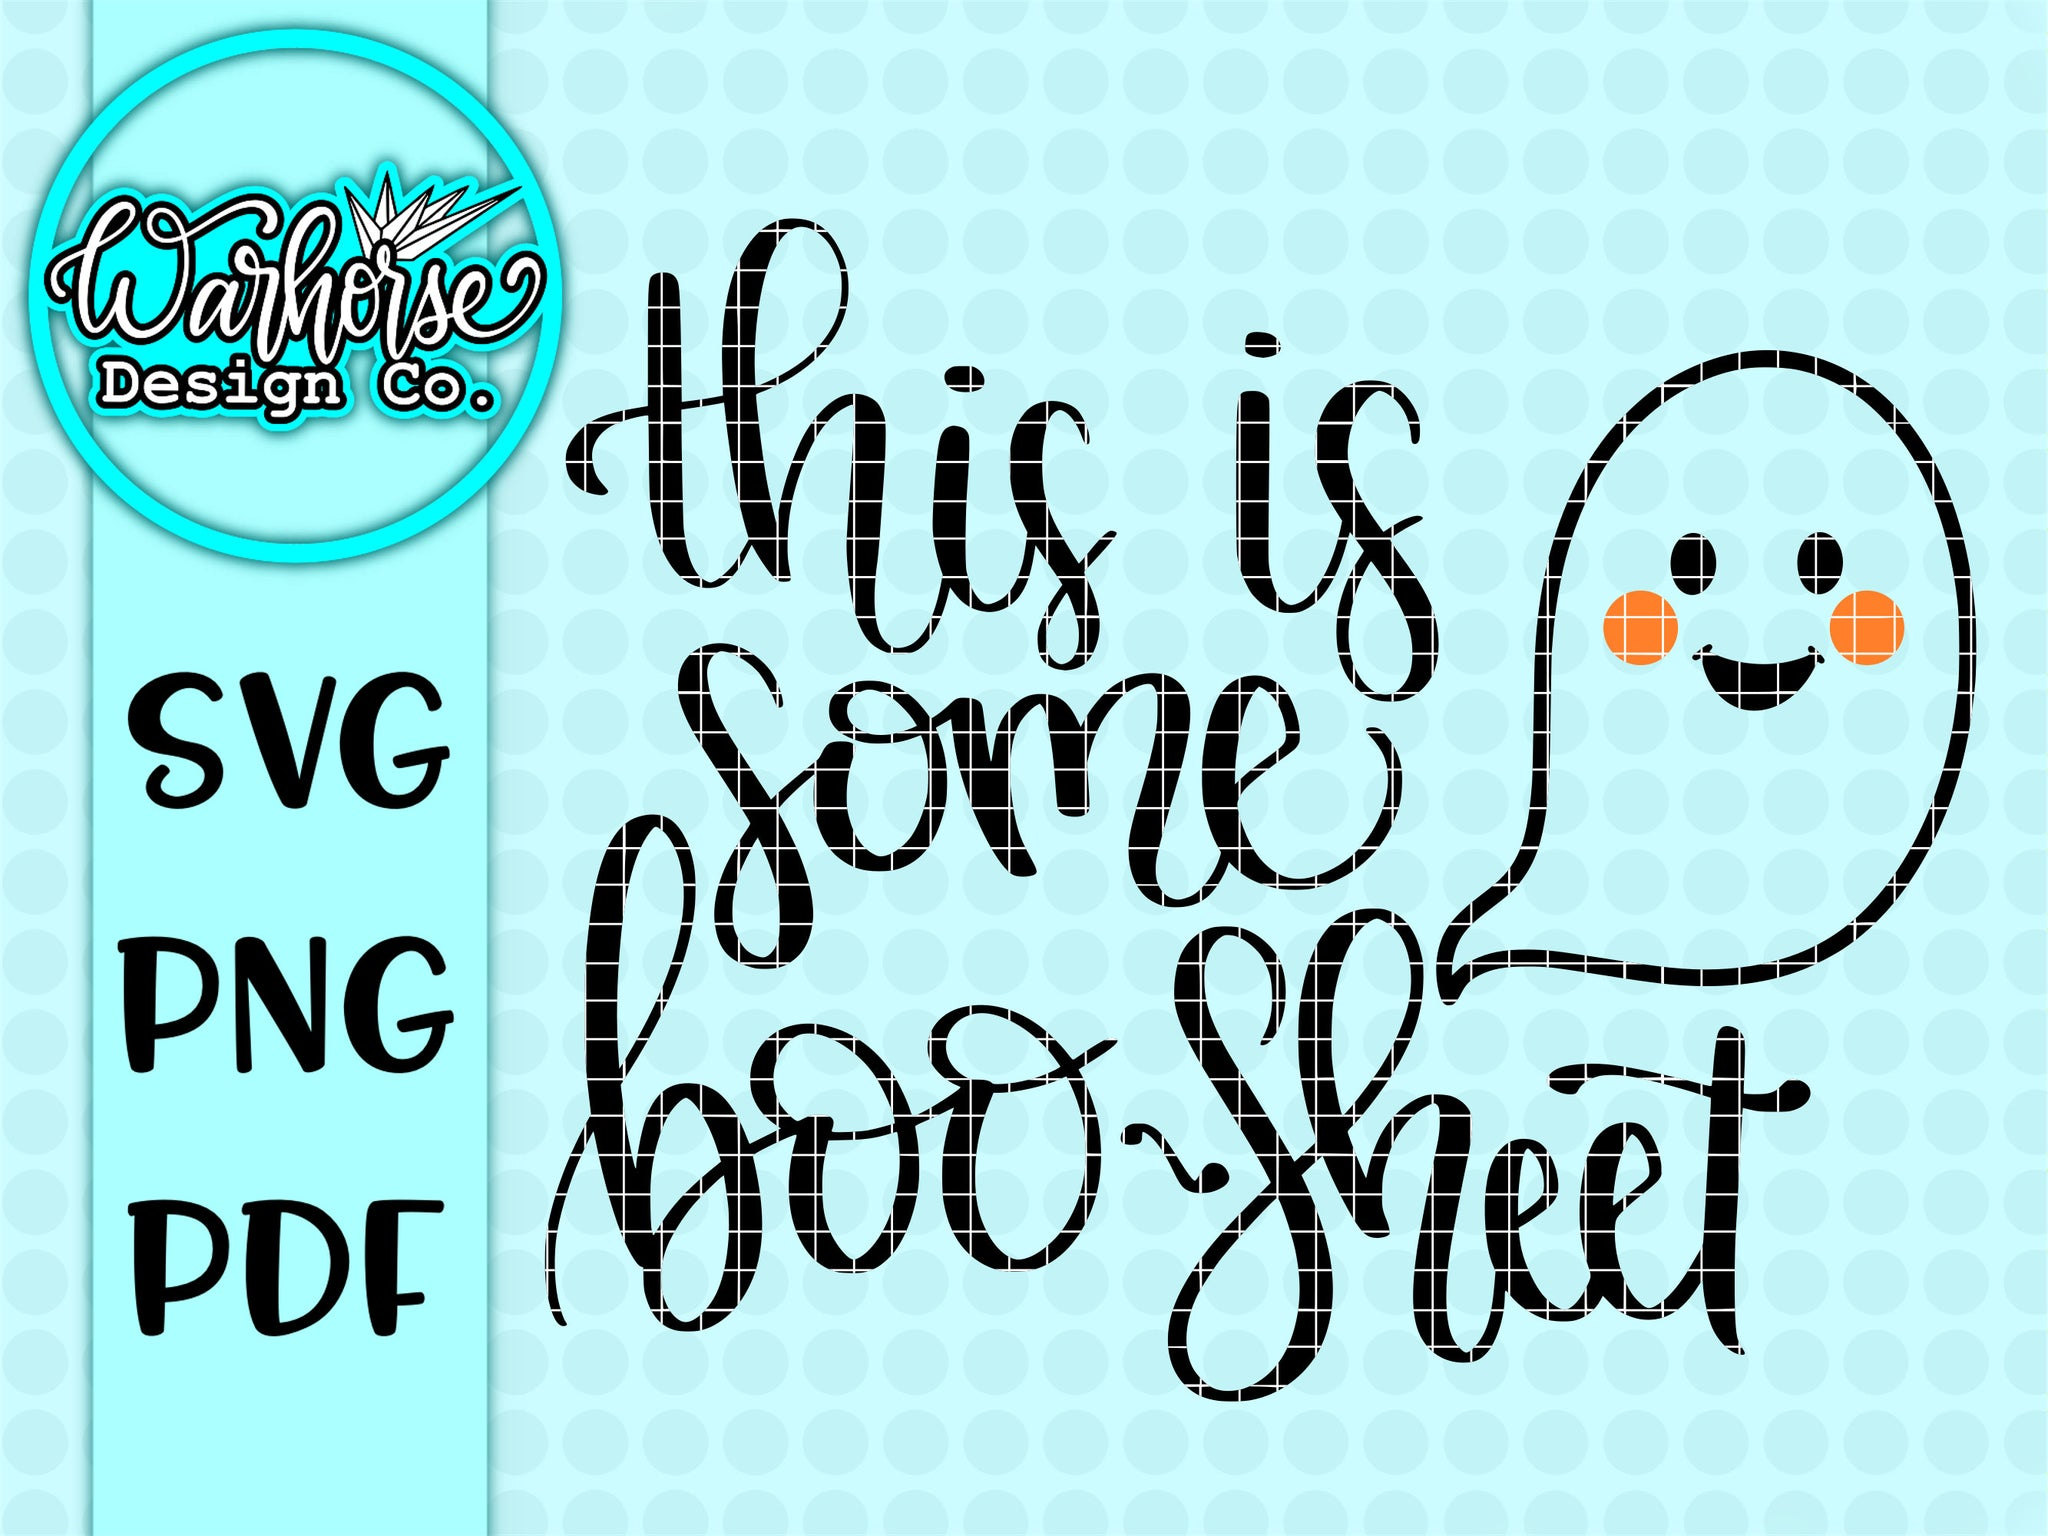 This is some boo-sheet SVG PNG PDF